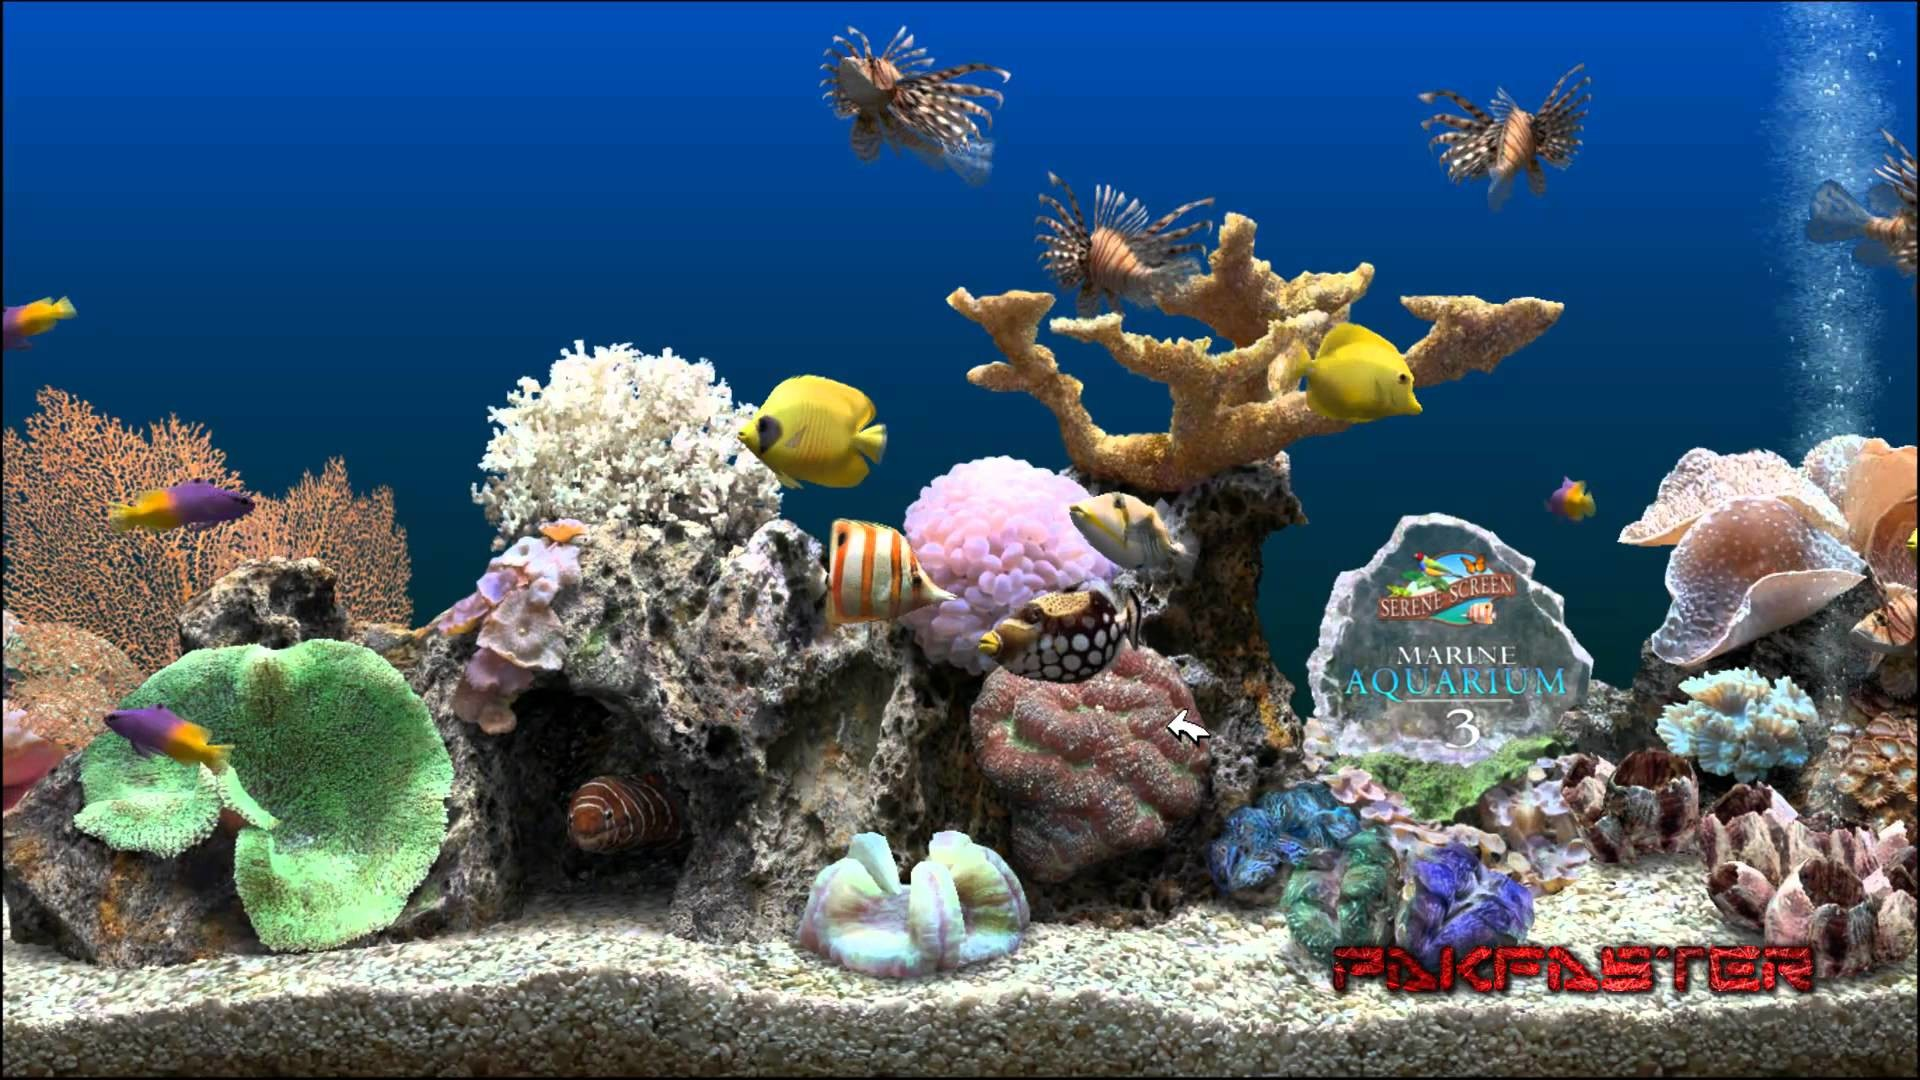 1920x1080 Animated Aquarium Desktop Wallpaper Windows : Usmc wallpapers and  screensavers wallpapersafari